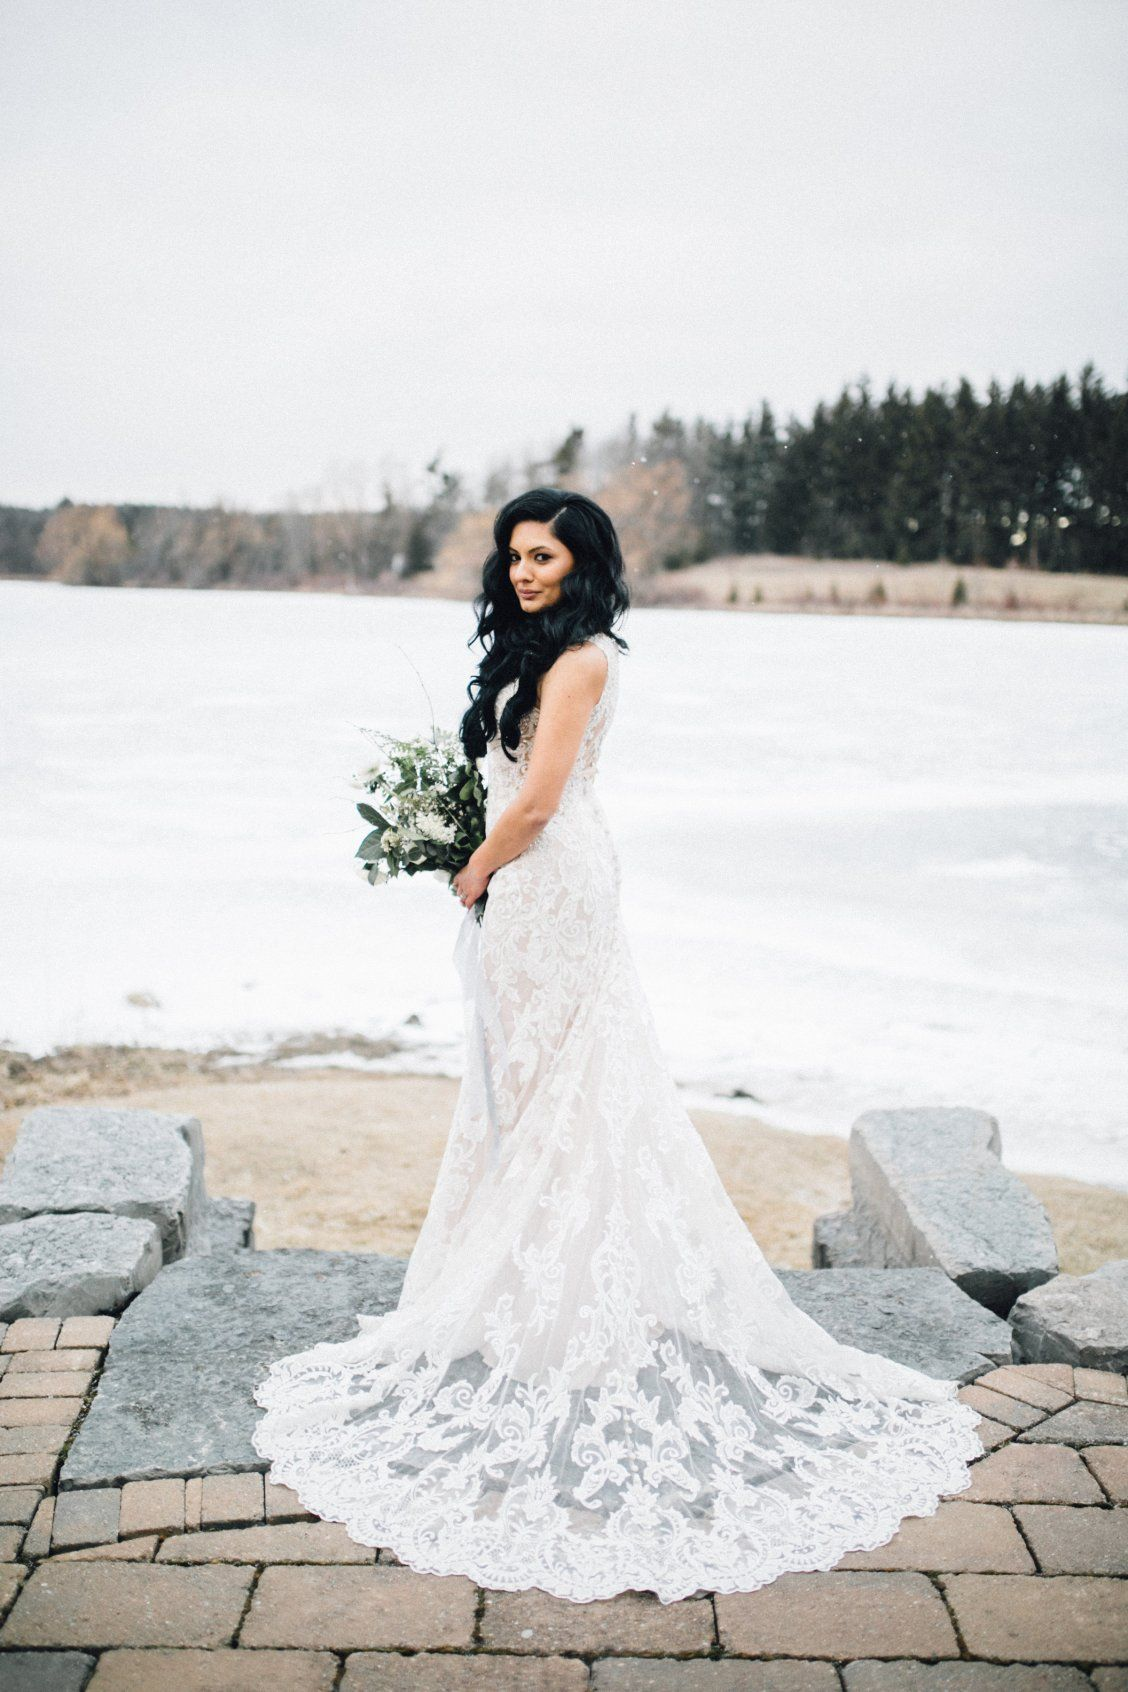 Simply Lace Photo Captured The Most Beautiful Photo Of Bride Incia In Madison James Mj316 Casamento